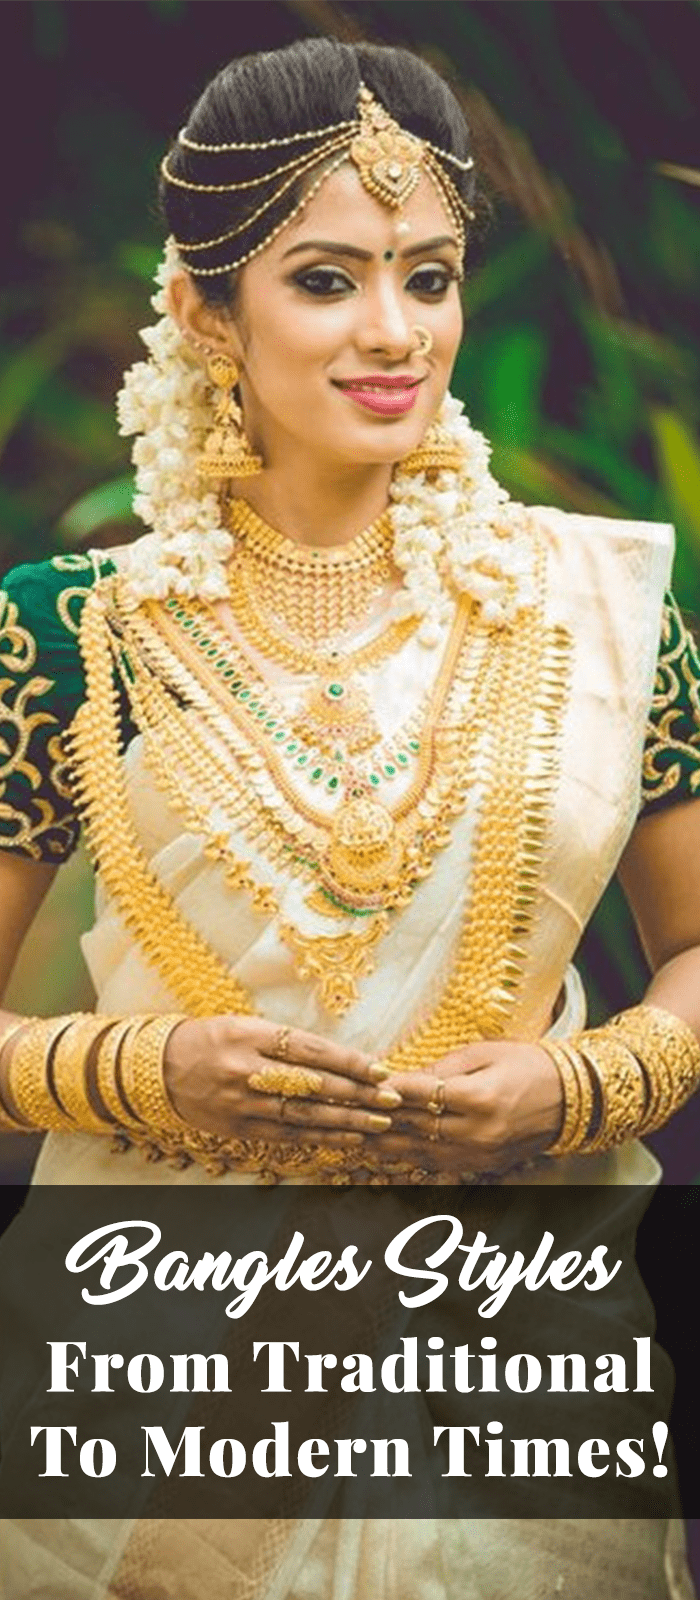 Bangles Styles – From Traditional To Modern Times!